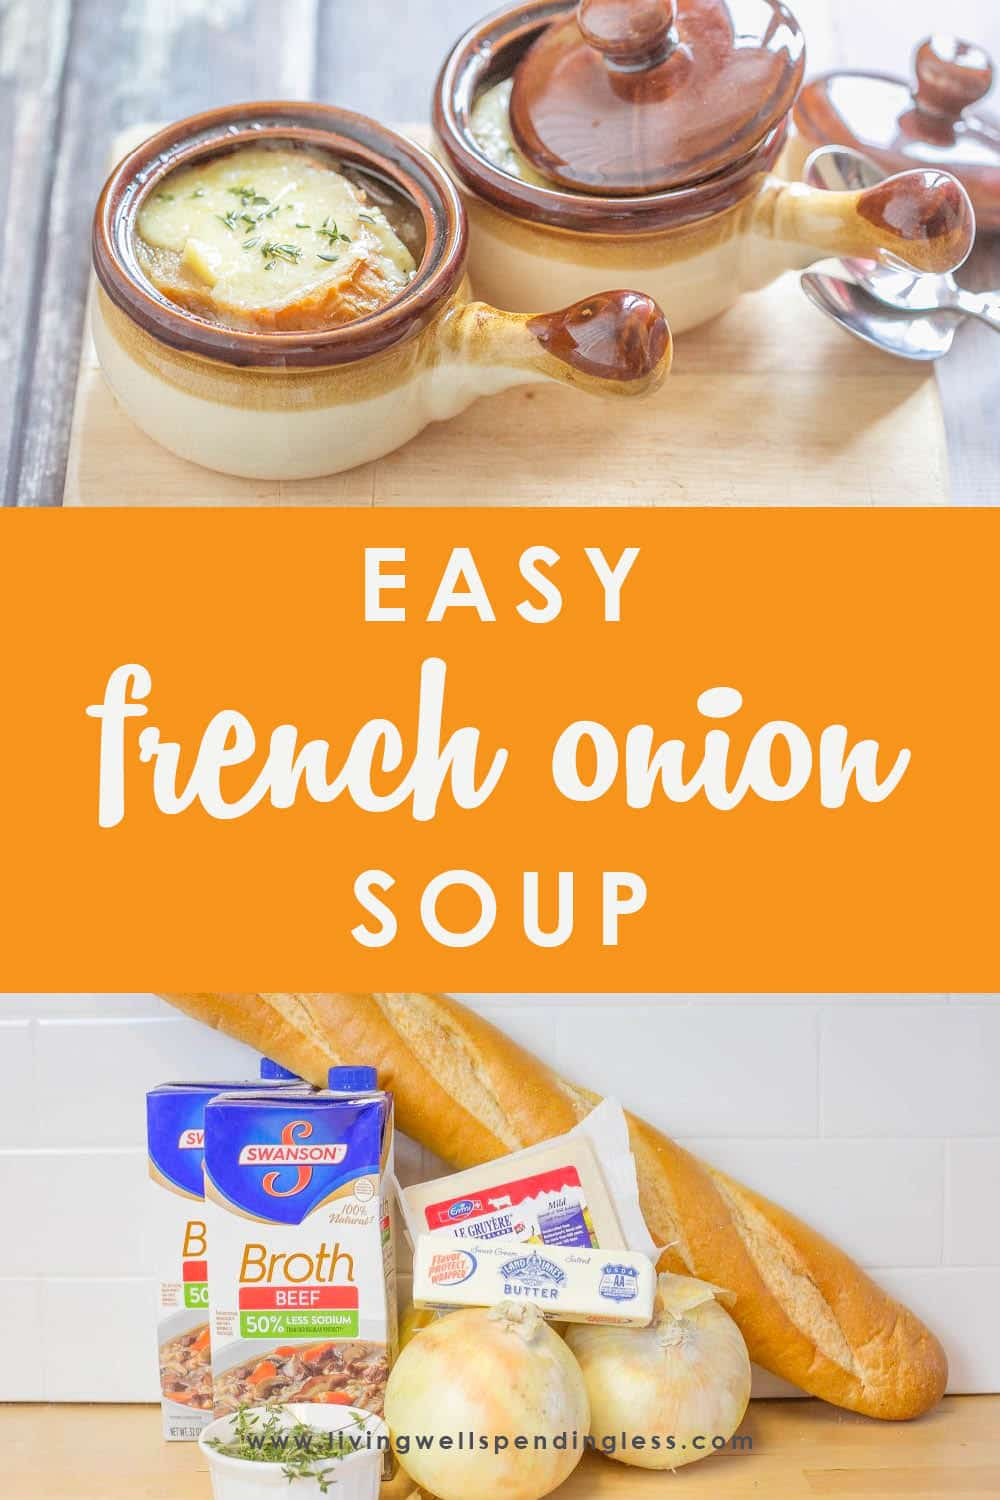 This ridiculously easy French Onion Soup comes together fast, then goes straight from the freezer to the slow cooker for an effortless meal that still feels extra special. Perfect for lunch or dinner. #crockpot #soup #wintersoups #frenchonionsoup #healthydinner #quickdinner #freezercooking #foodmadesimple #30minutemeal #homemade